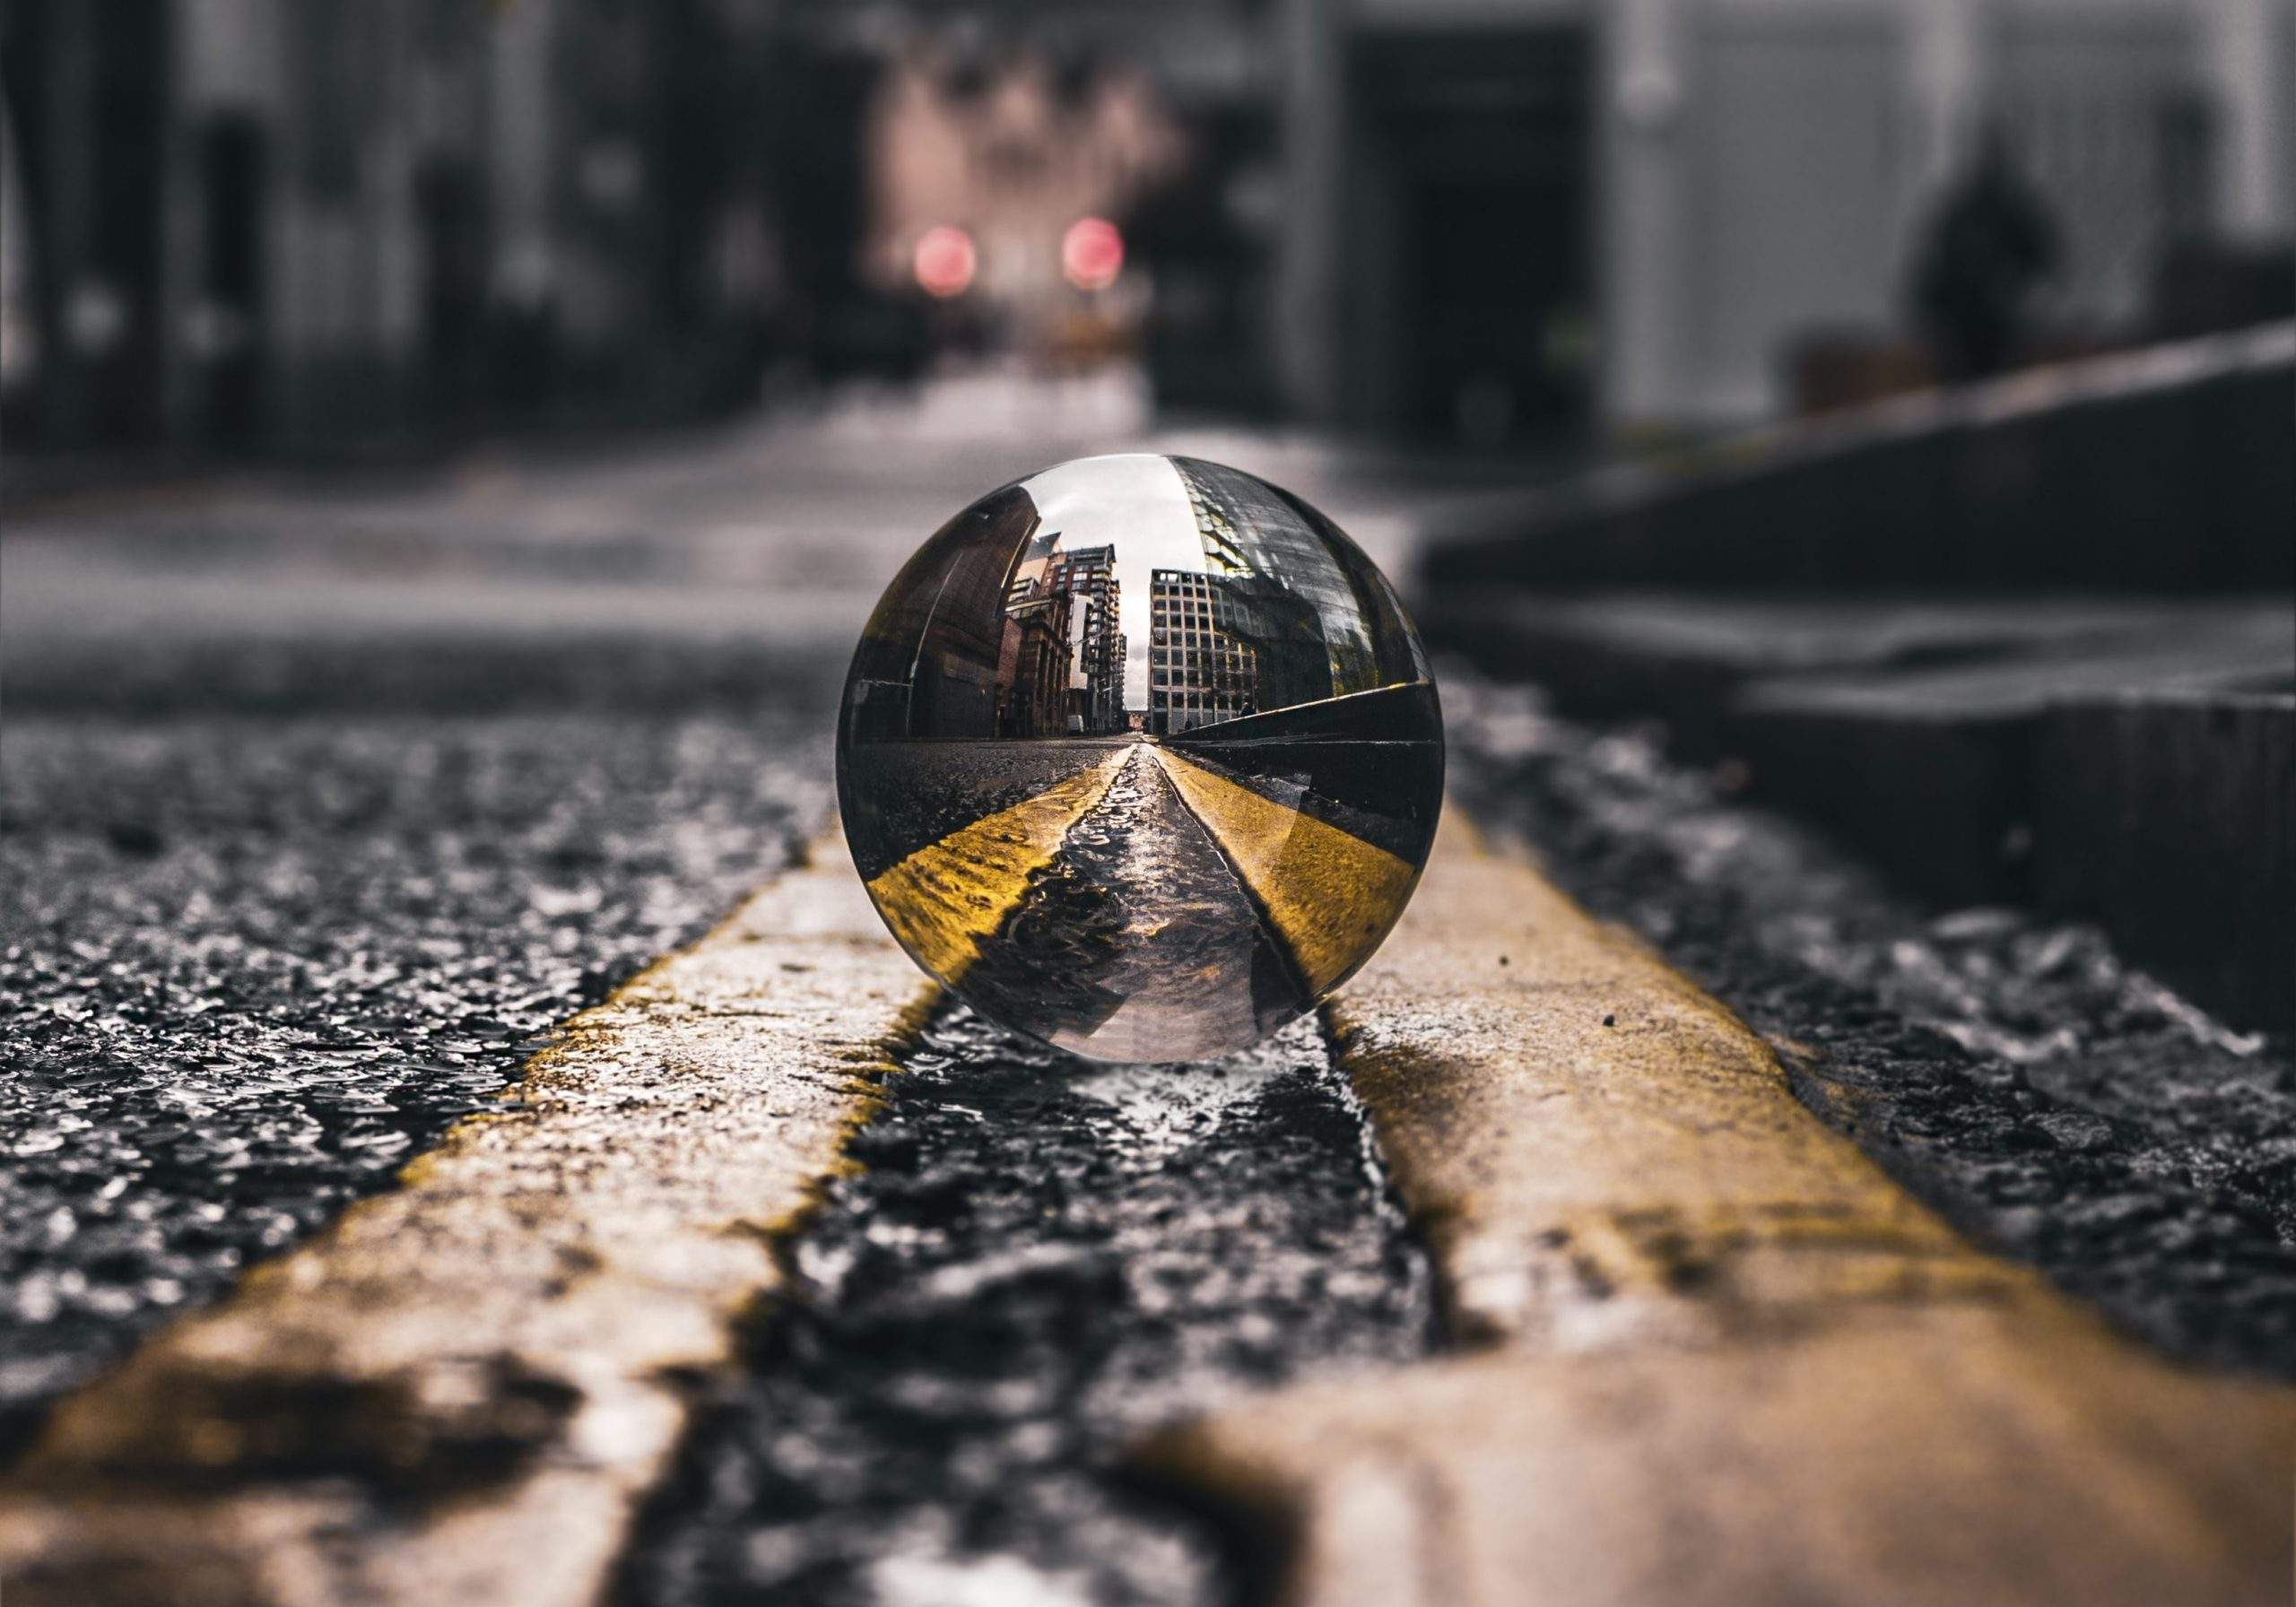 selective-focus-photo-of-lensball-on-asphalt-road-2251798-landscape